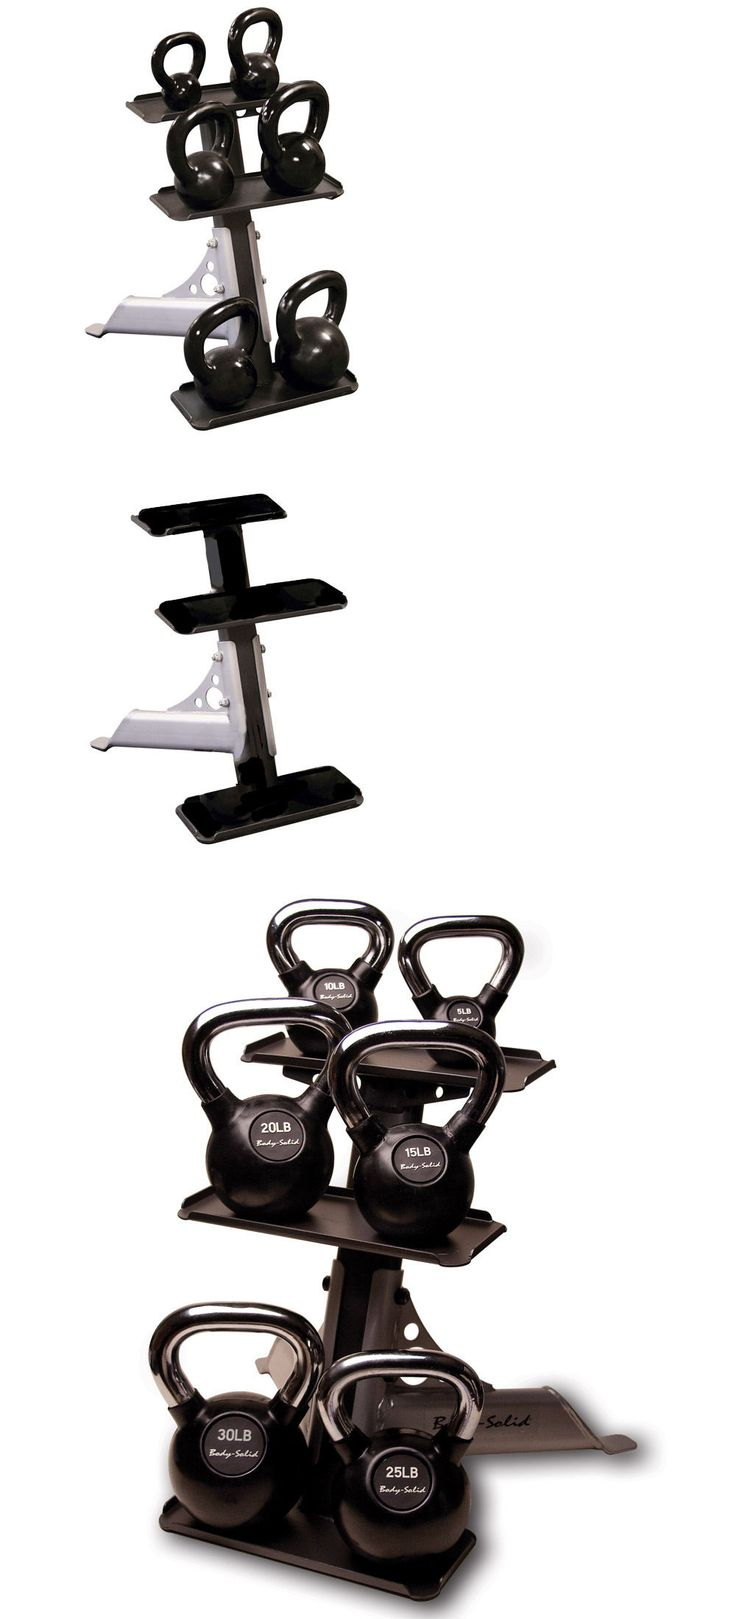 Weight Storage 179819: Body-Solid Kettlebell Rack Gdkr50 -> BUY IT NOW ONLY: $78.76 on eBay!